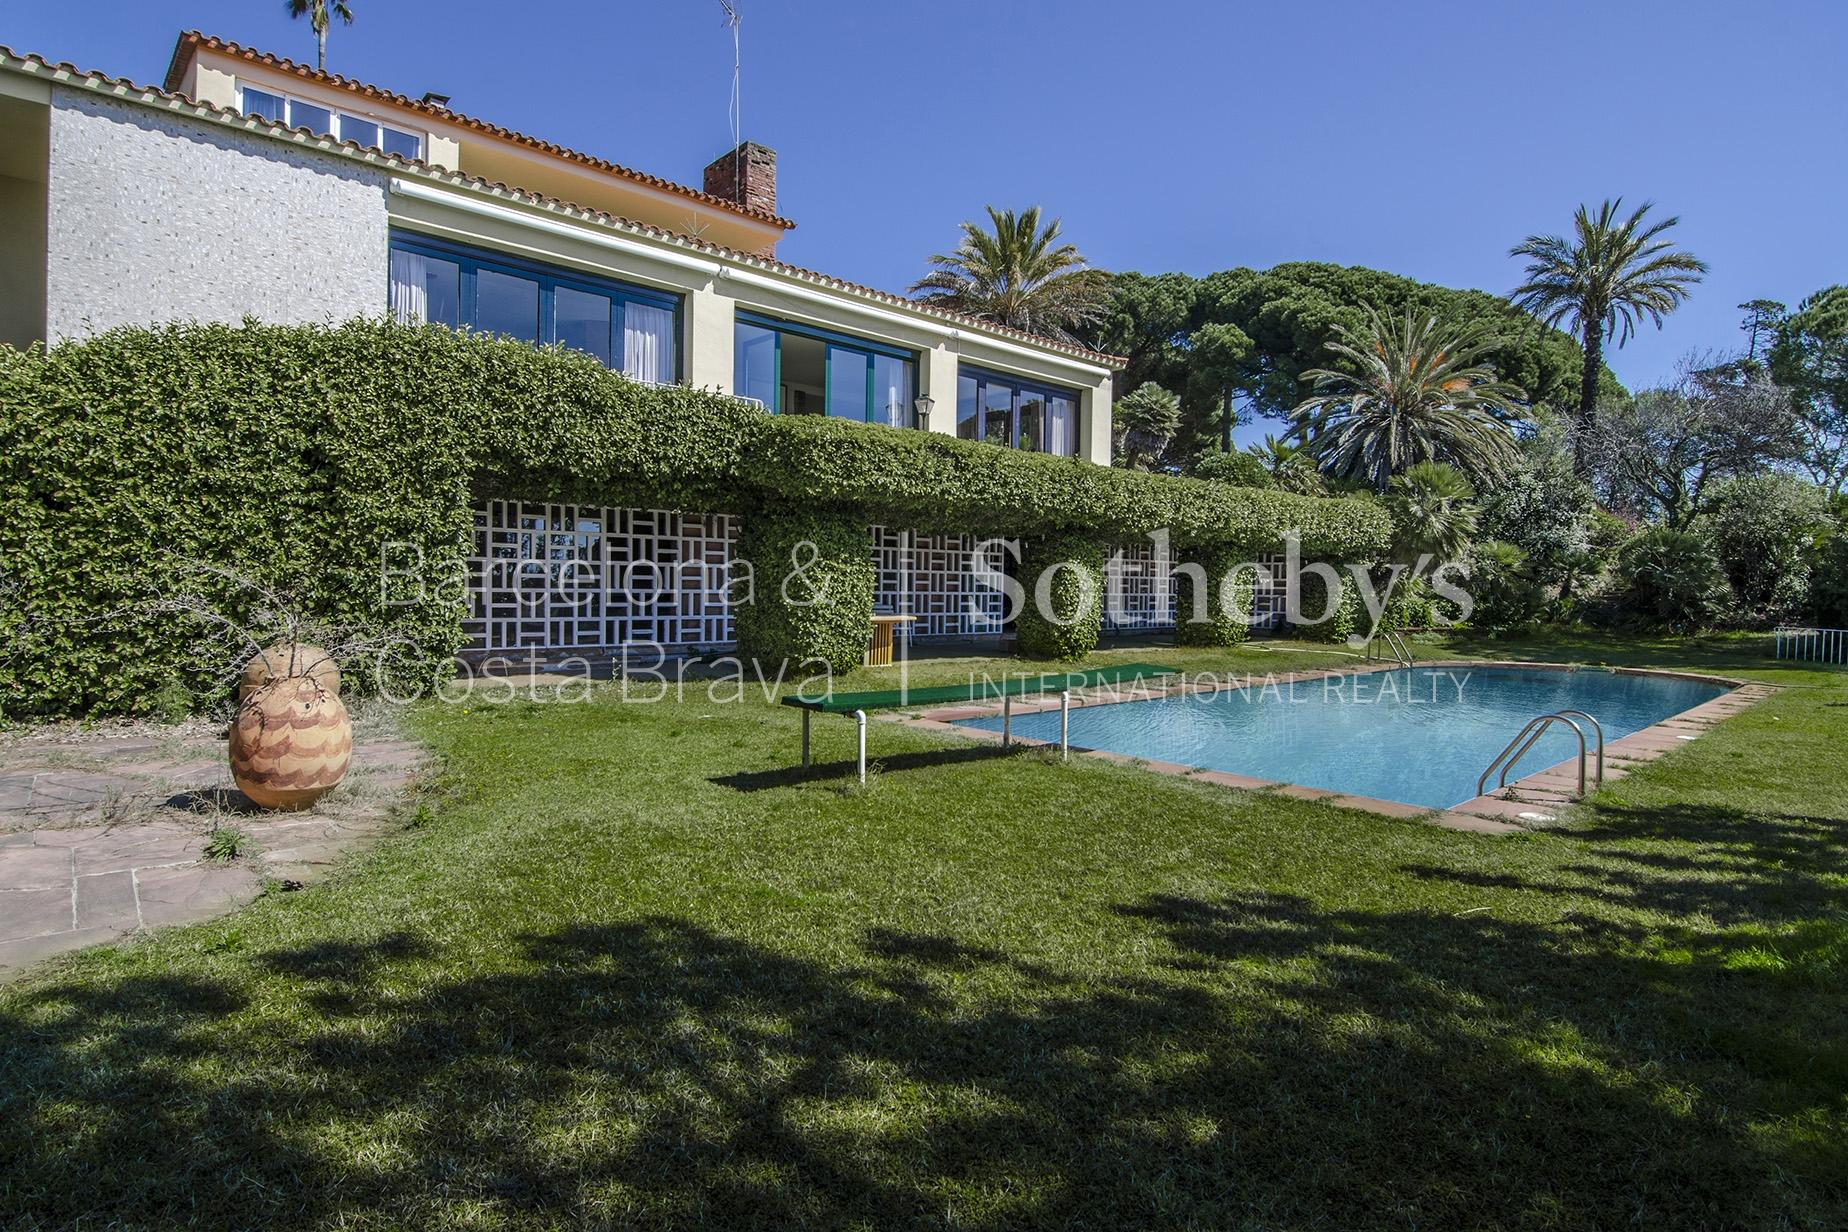 Property For Sale at Spacious and Private Llavaneres Home on Two Hectares